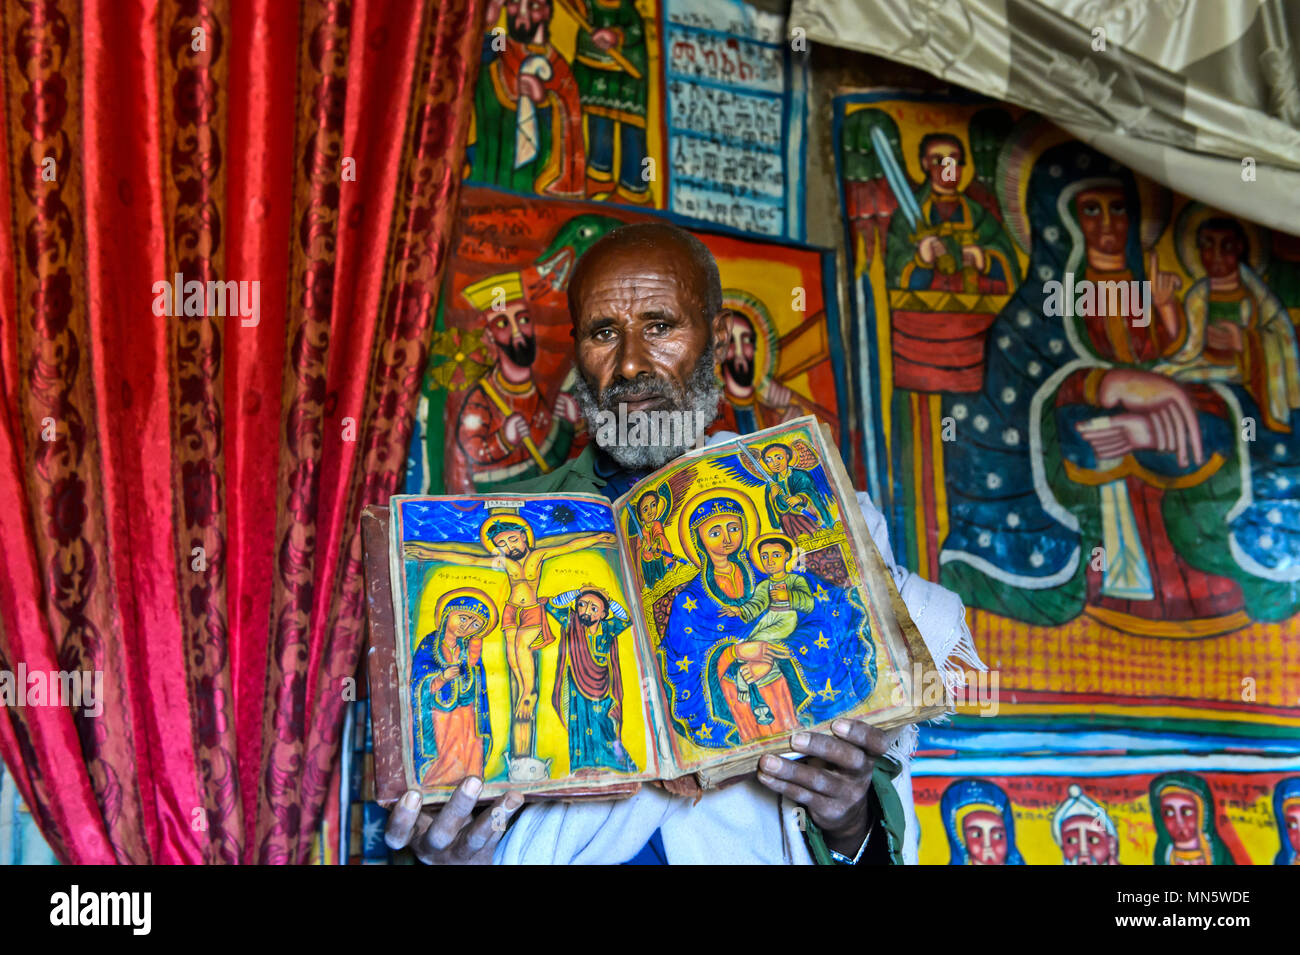 Priest of the rock-hewn church Mikael Mellehayzengi showing the book Miracles of Maria with colorful hand-painted designs on parchment,Ethiopia - Stock Image